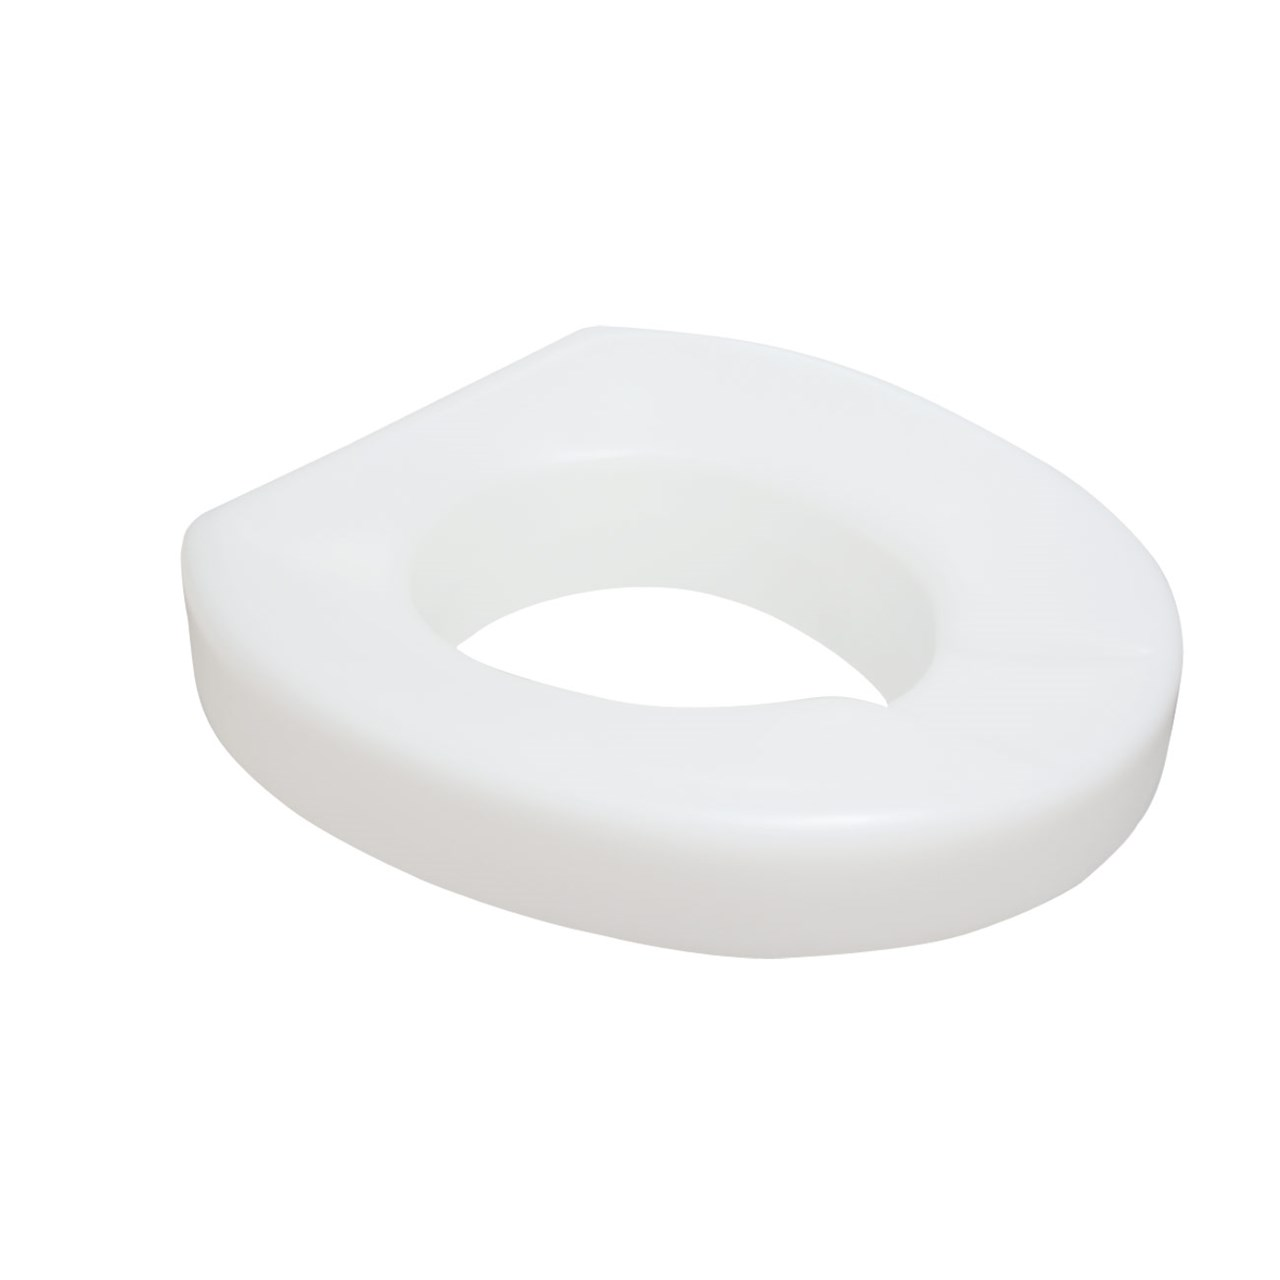 MaxiAids | Tall-Ette II - Two Inch High Toilet Seat Riser